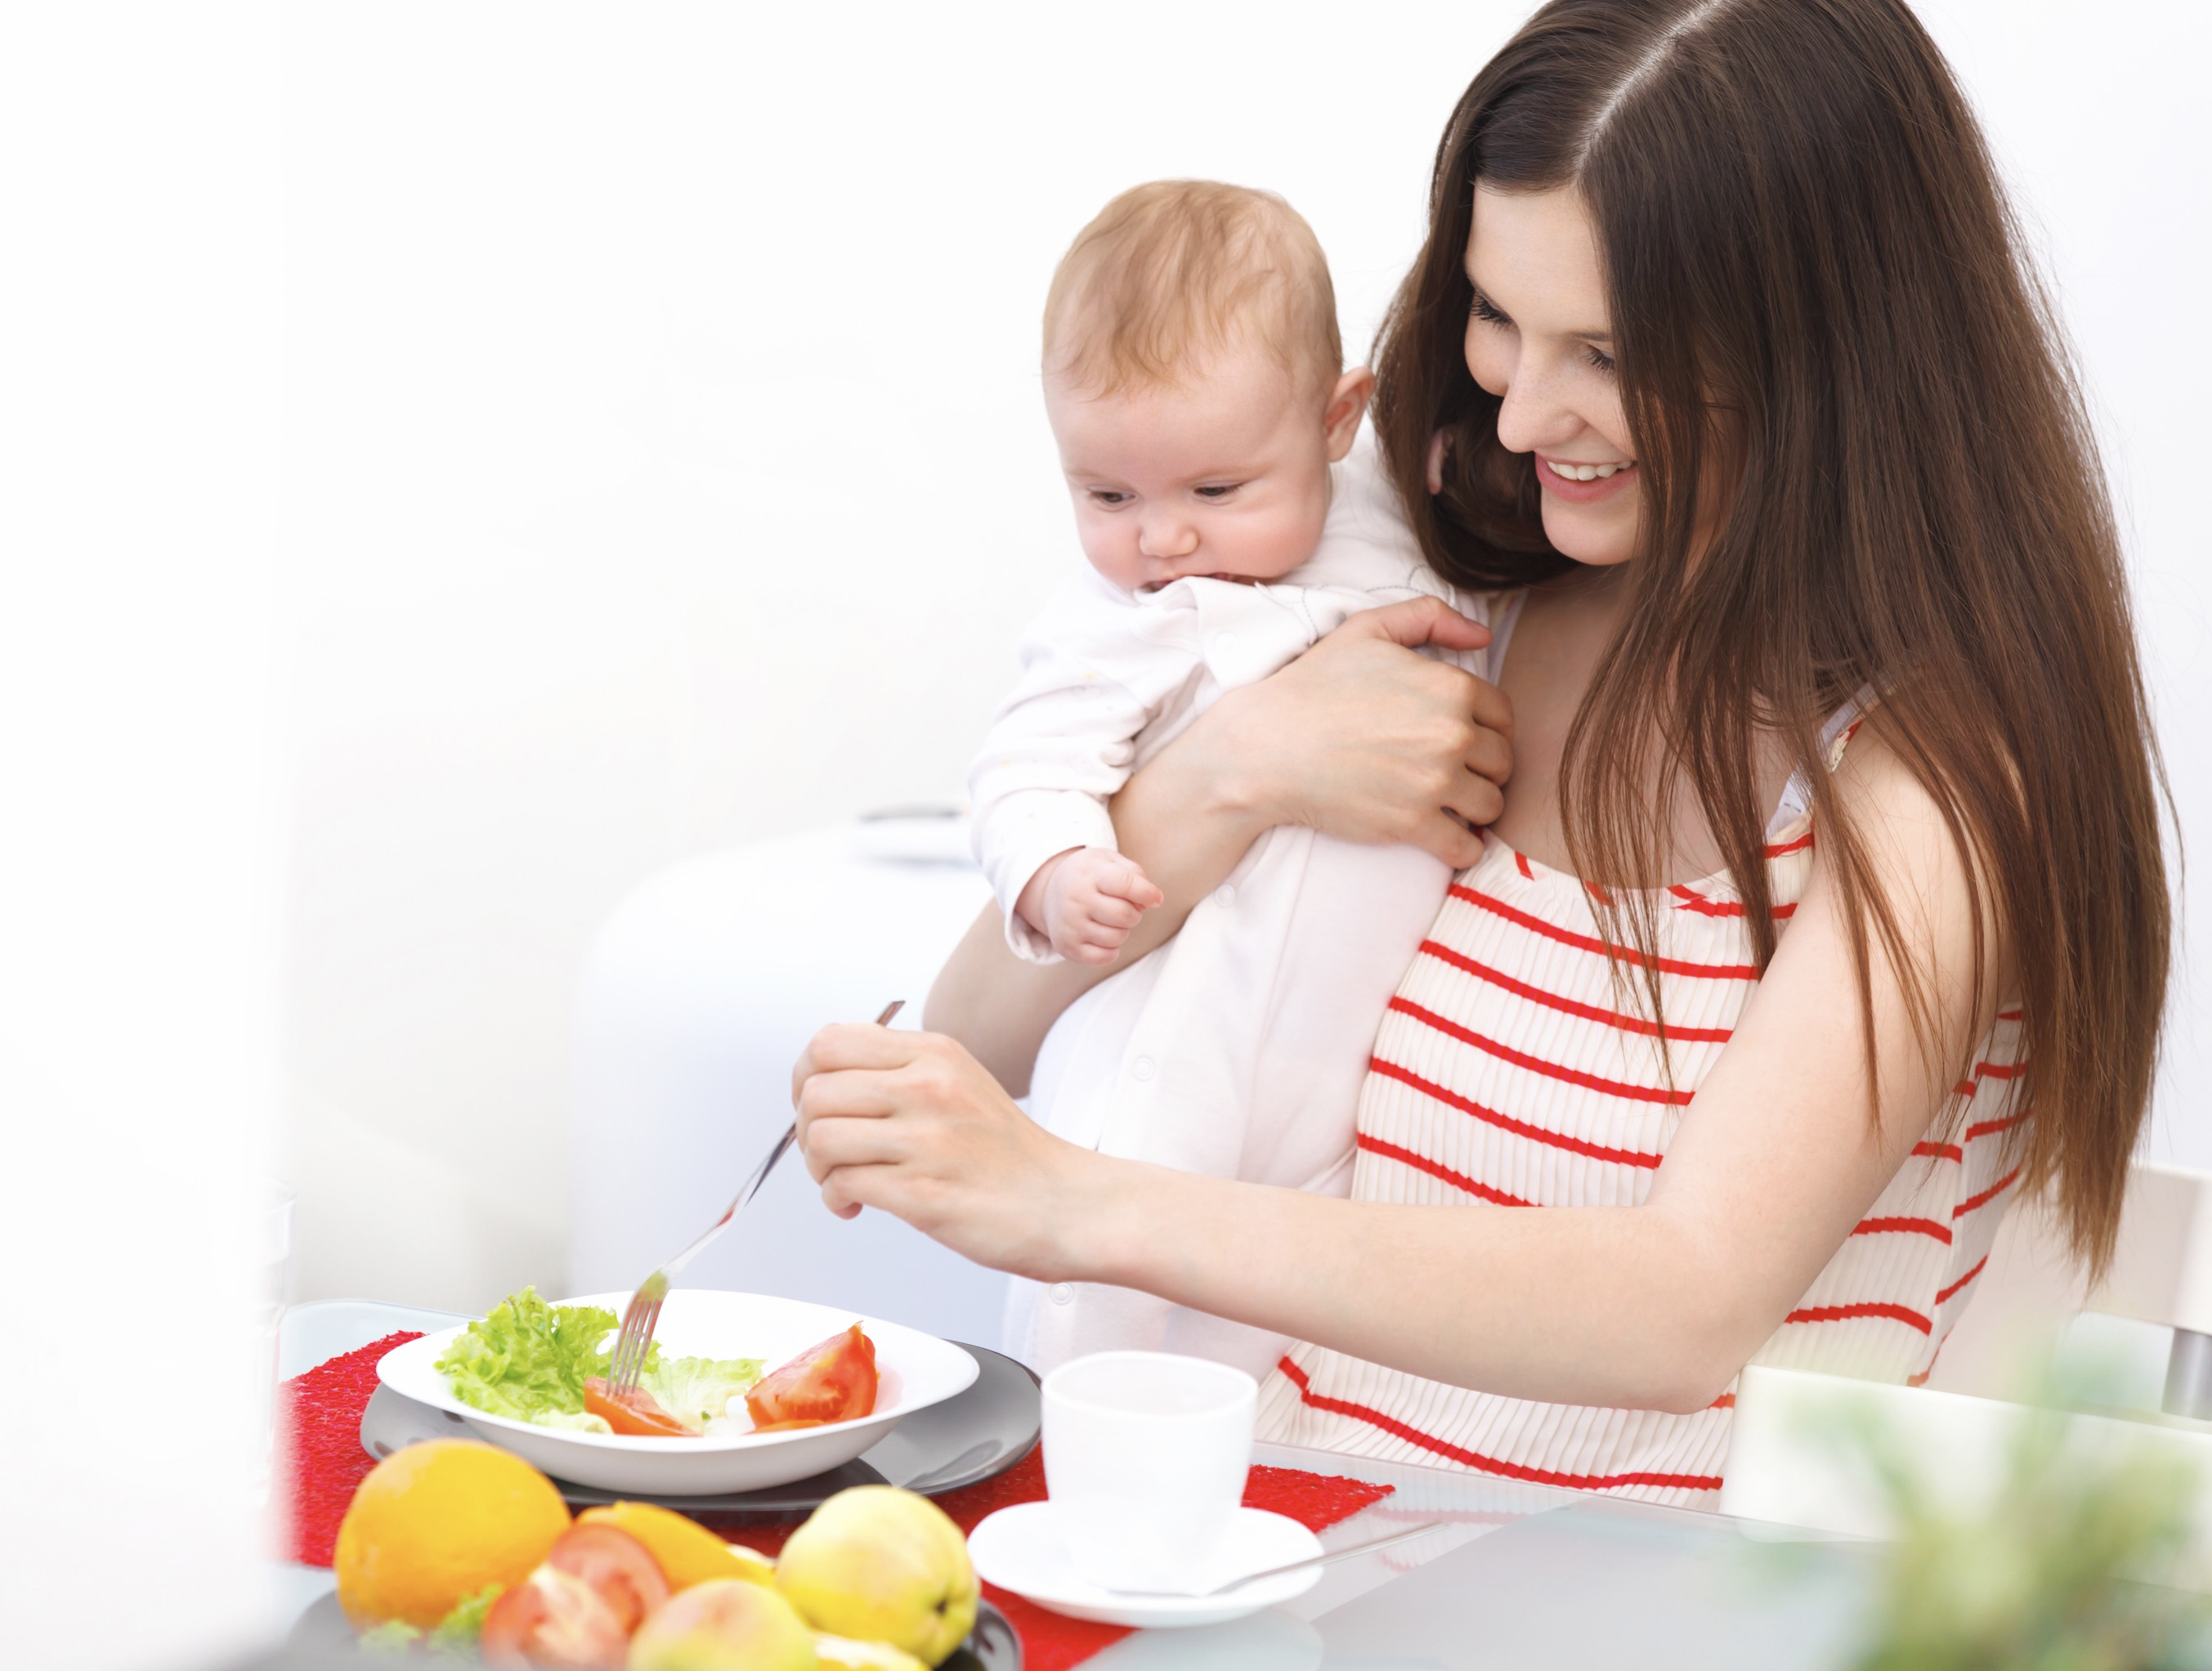 What should I eat during breastfeeding?